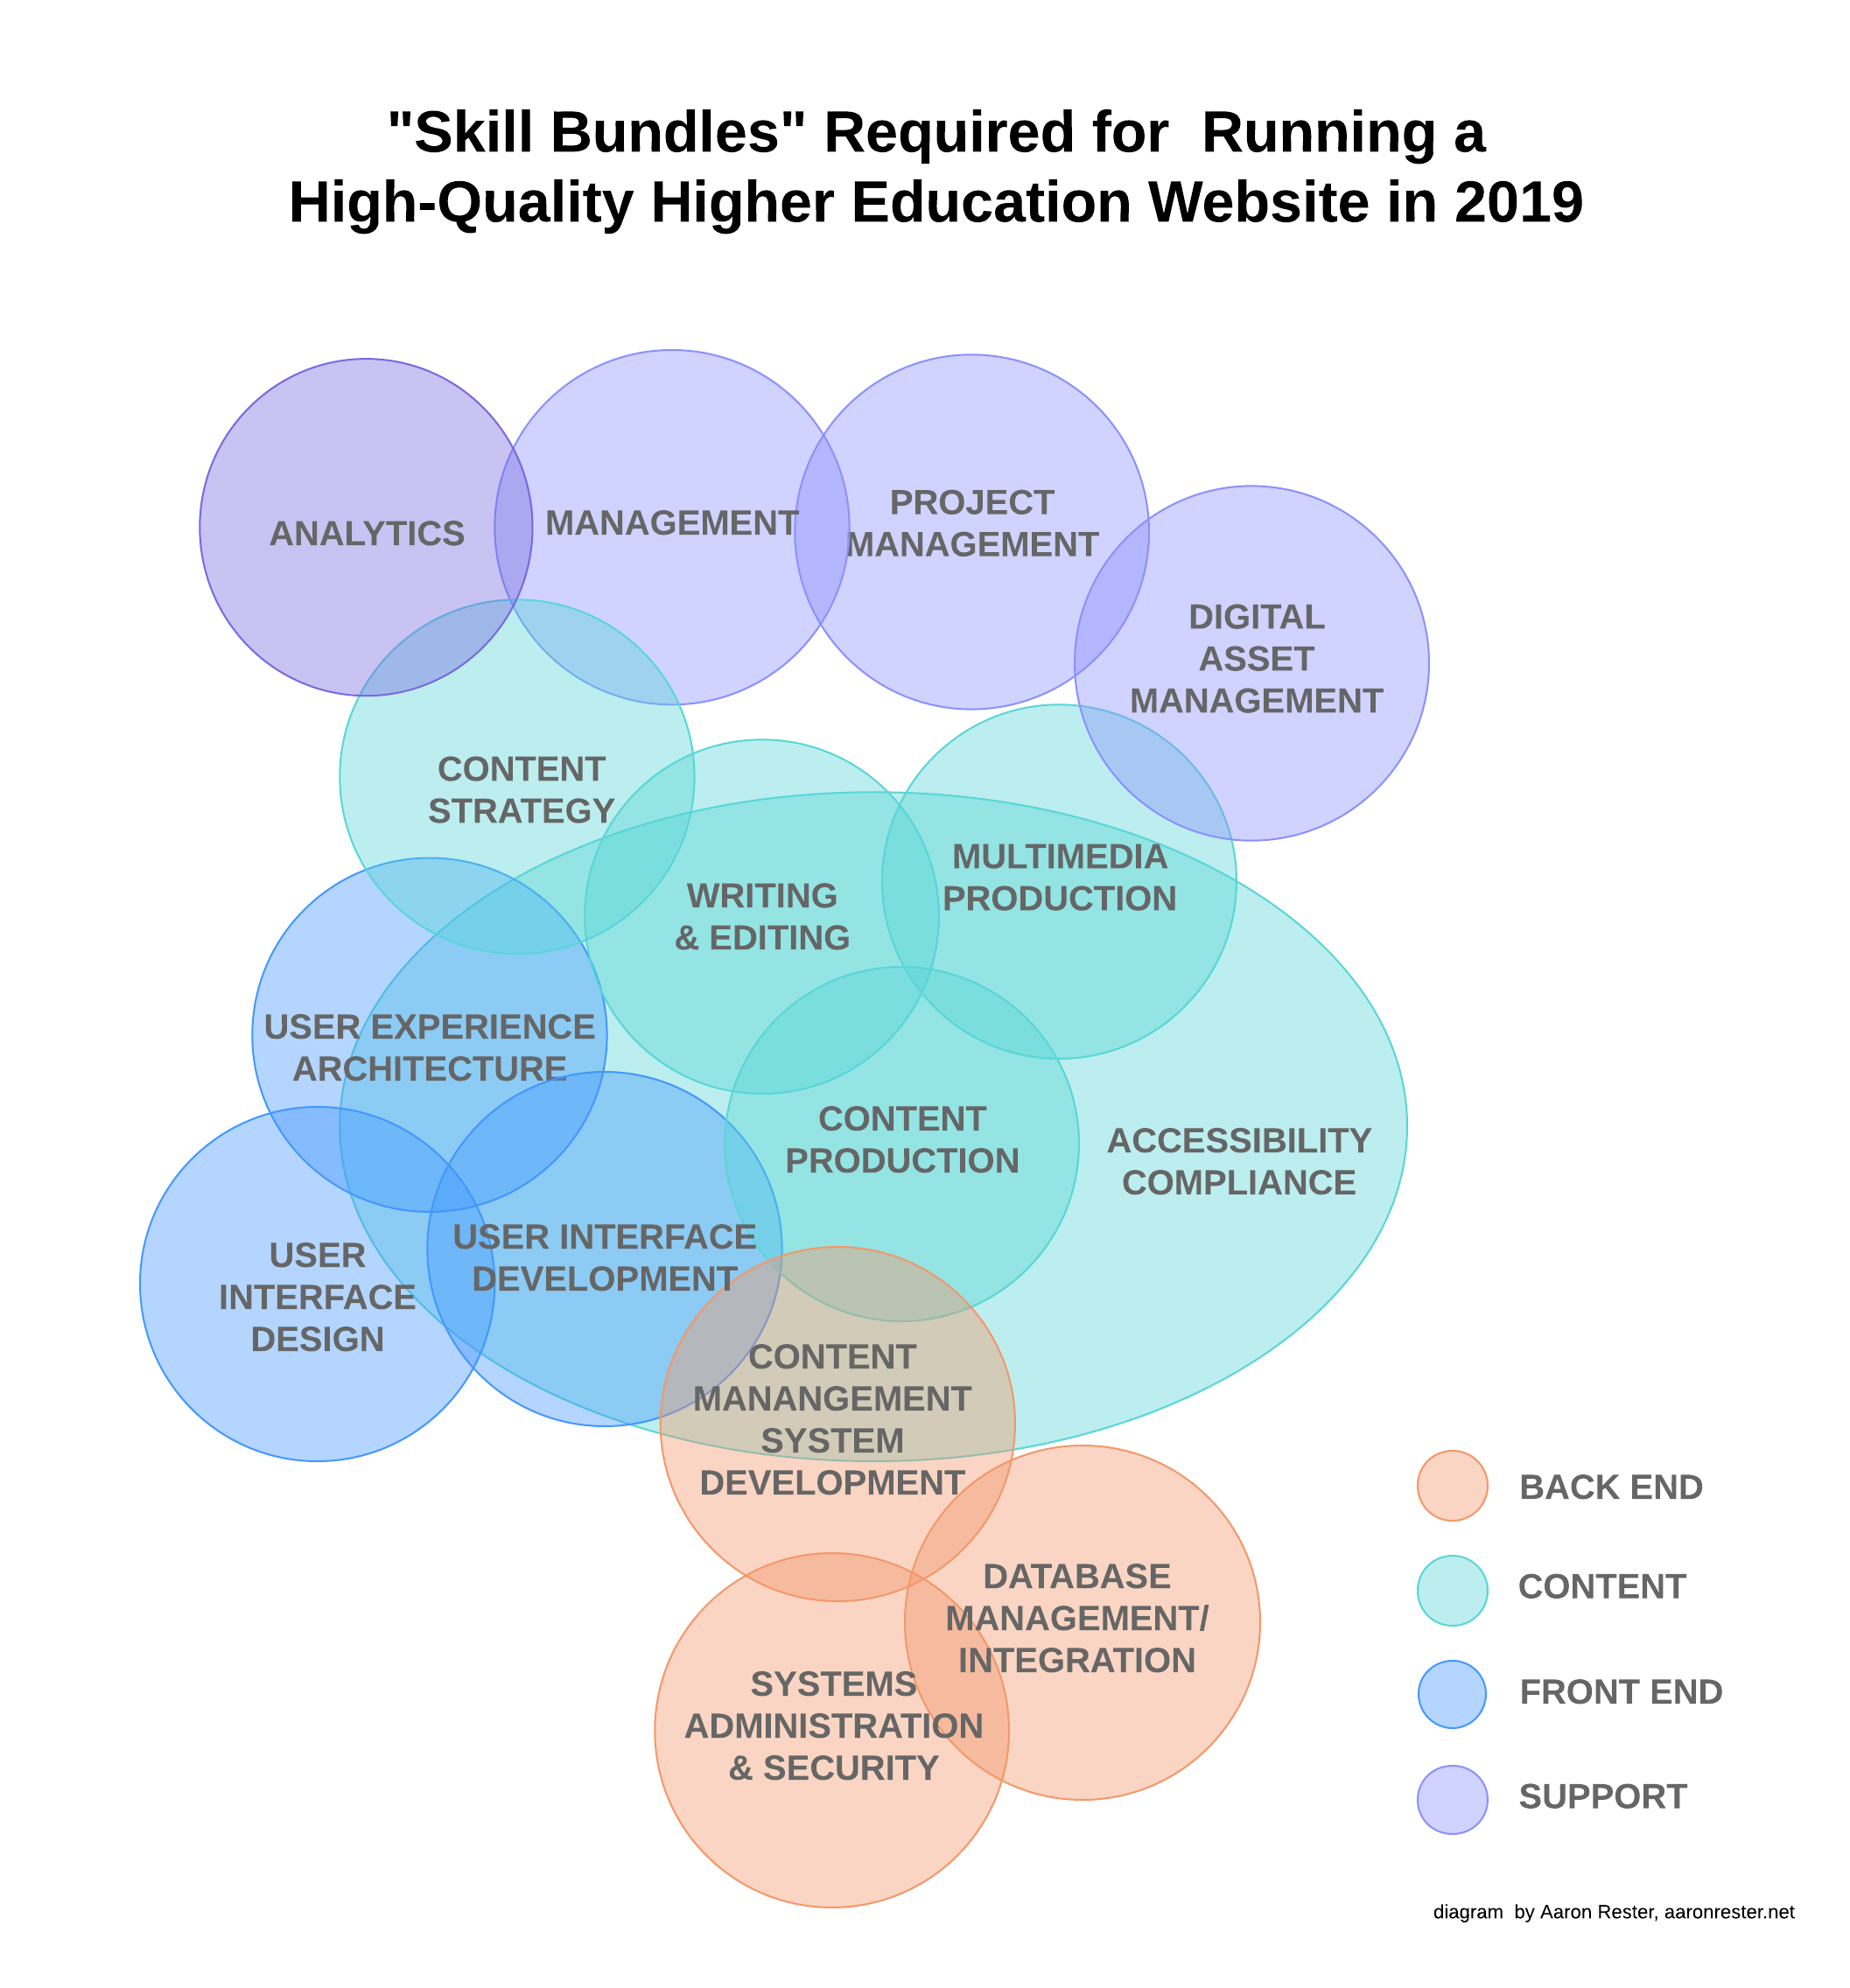 diagram illustrating the skill bundles required for running a high-quality higher education website in 2019